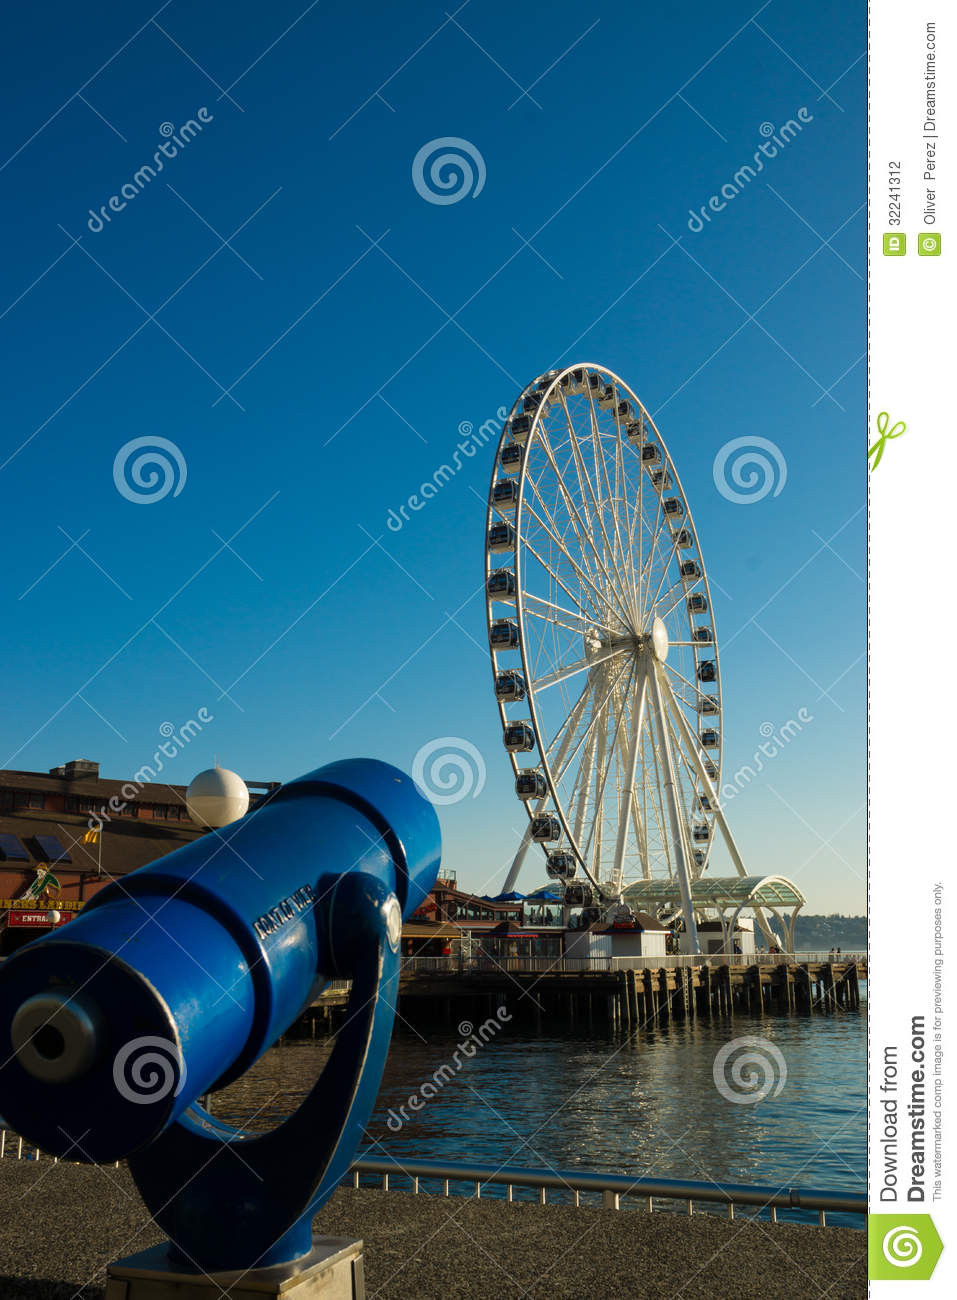 You can use one of these popular Seattle Great Wheel Discount Codes and offers to get your favorite products or services for less money at fastdownloadmin9lf.gq Save by using today's recommended Seattle Great Wheel Promo Codes and deals. There are 11 free and best Seattle Great Wheel Coupons for you to choose from.